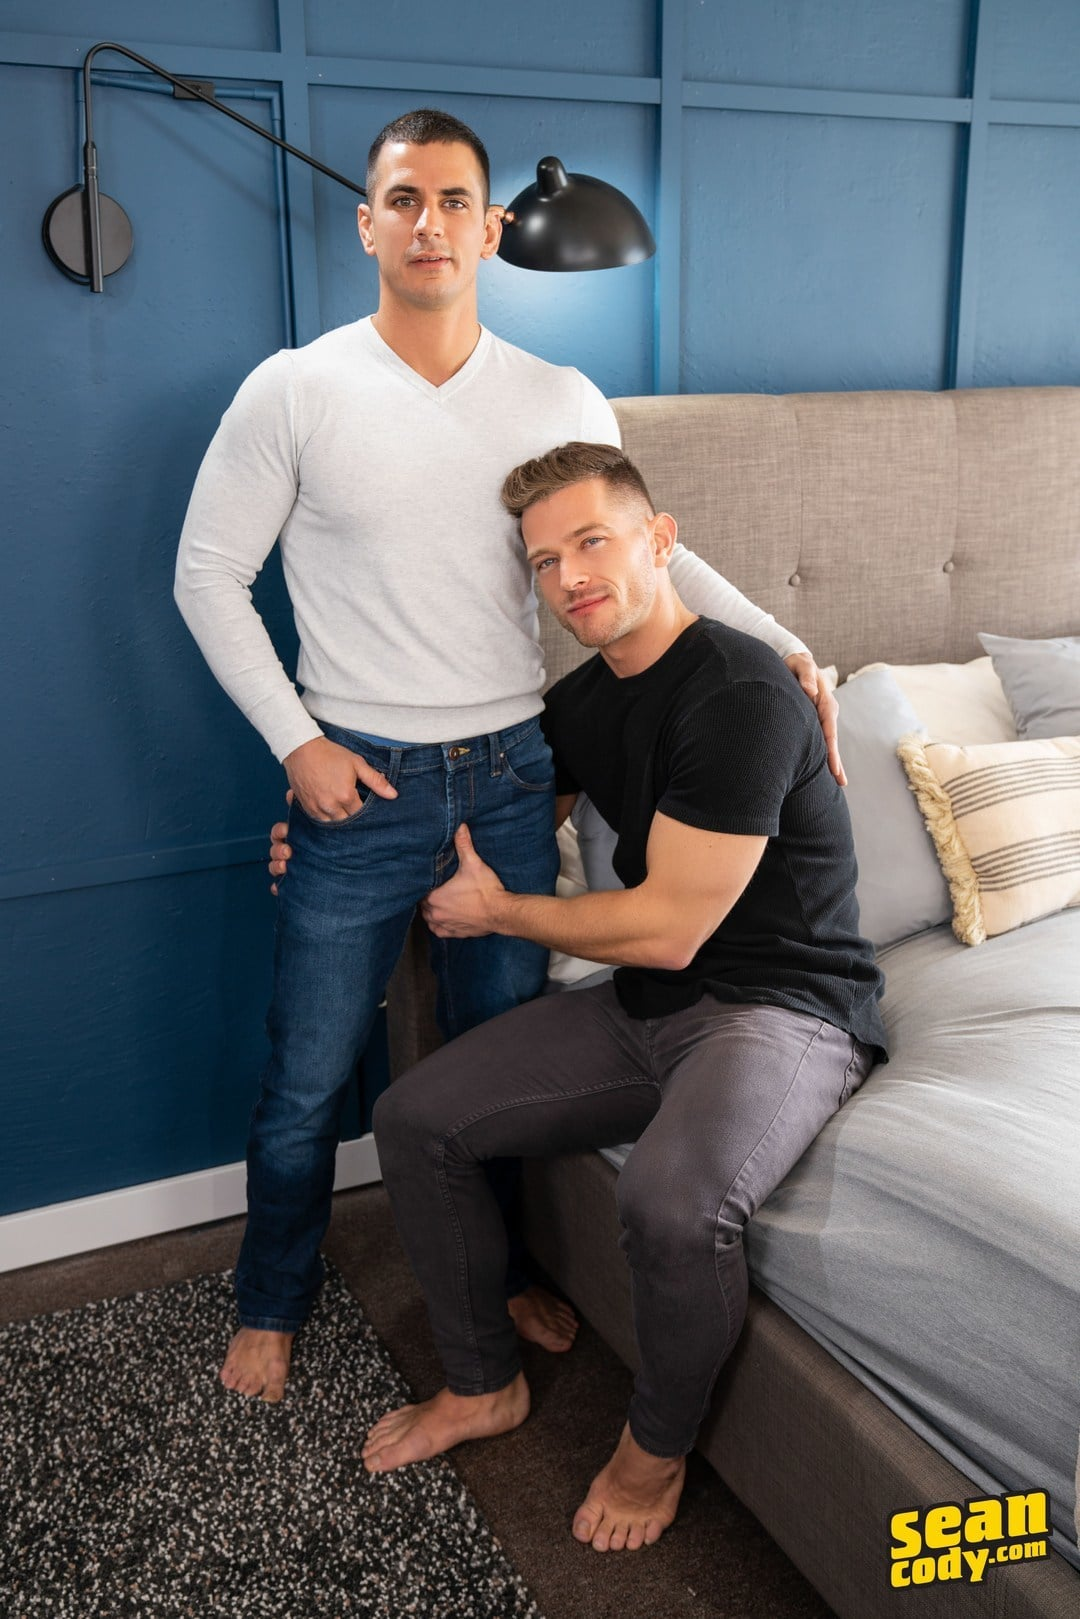 Lachlan and Deacon from Sean Cody